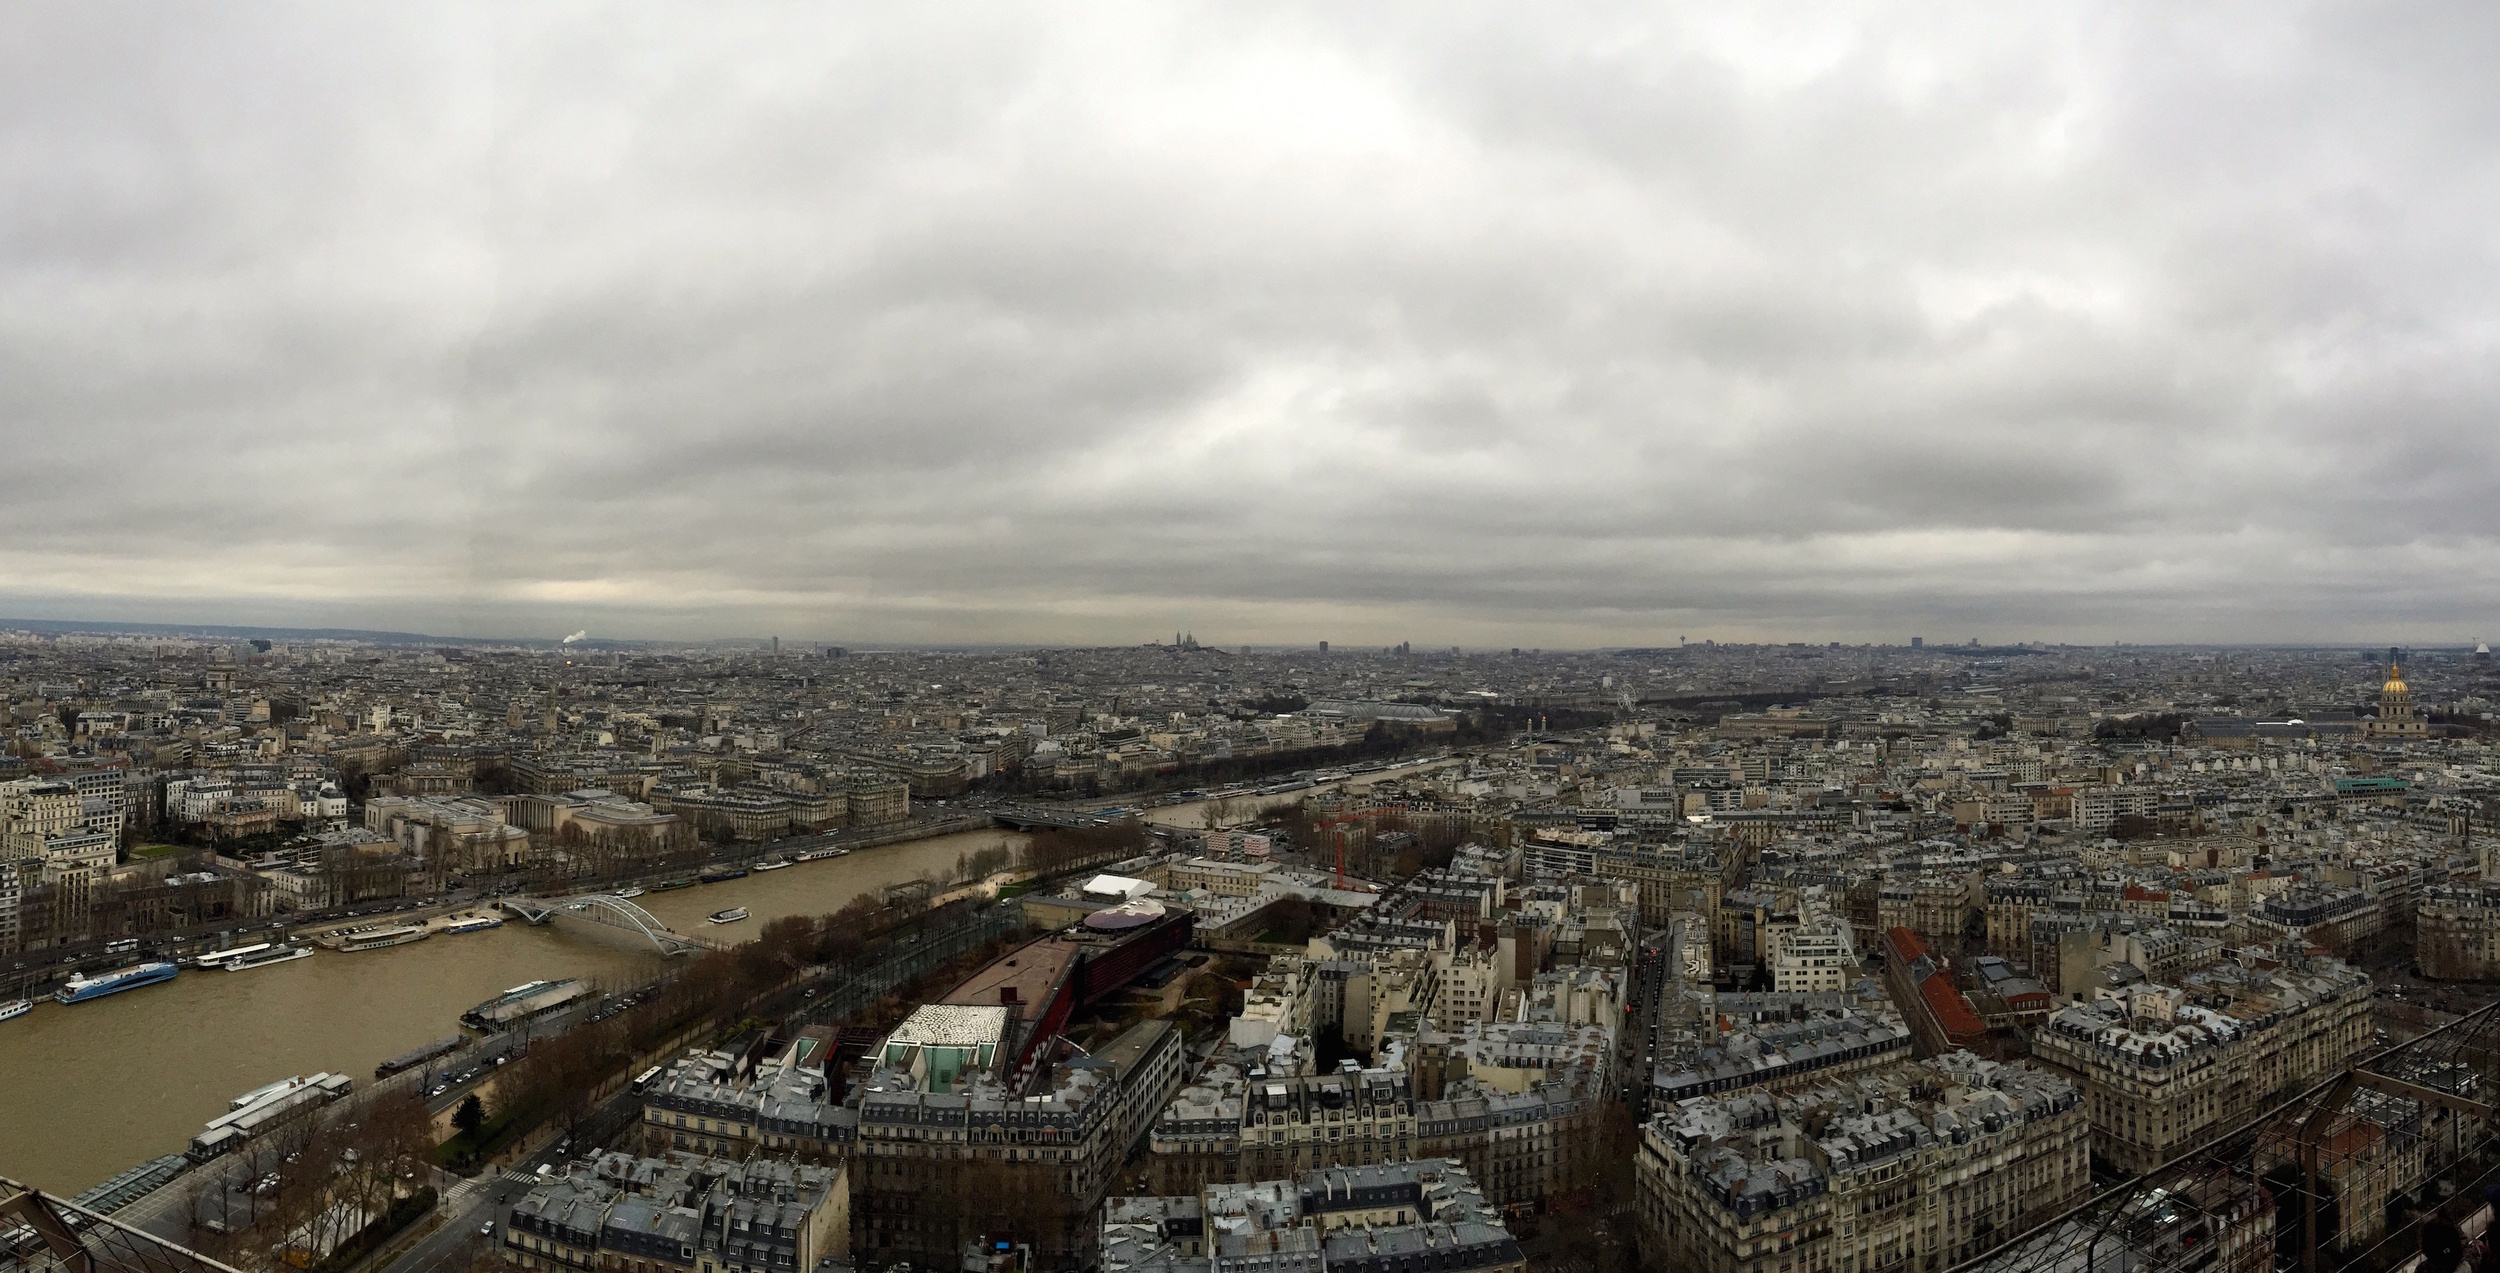 The view from the top of the Eiffel Tower